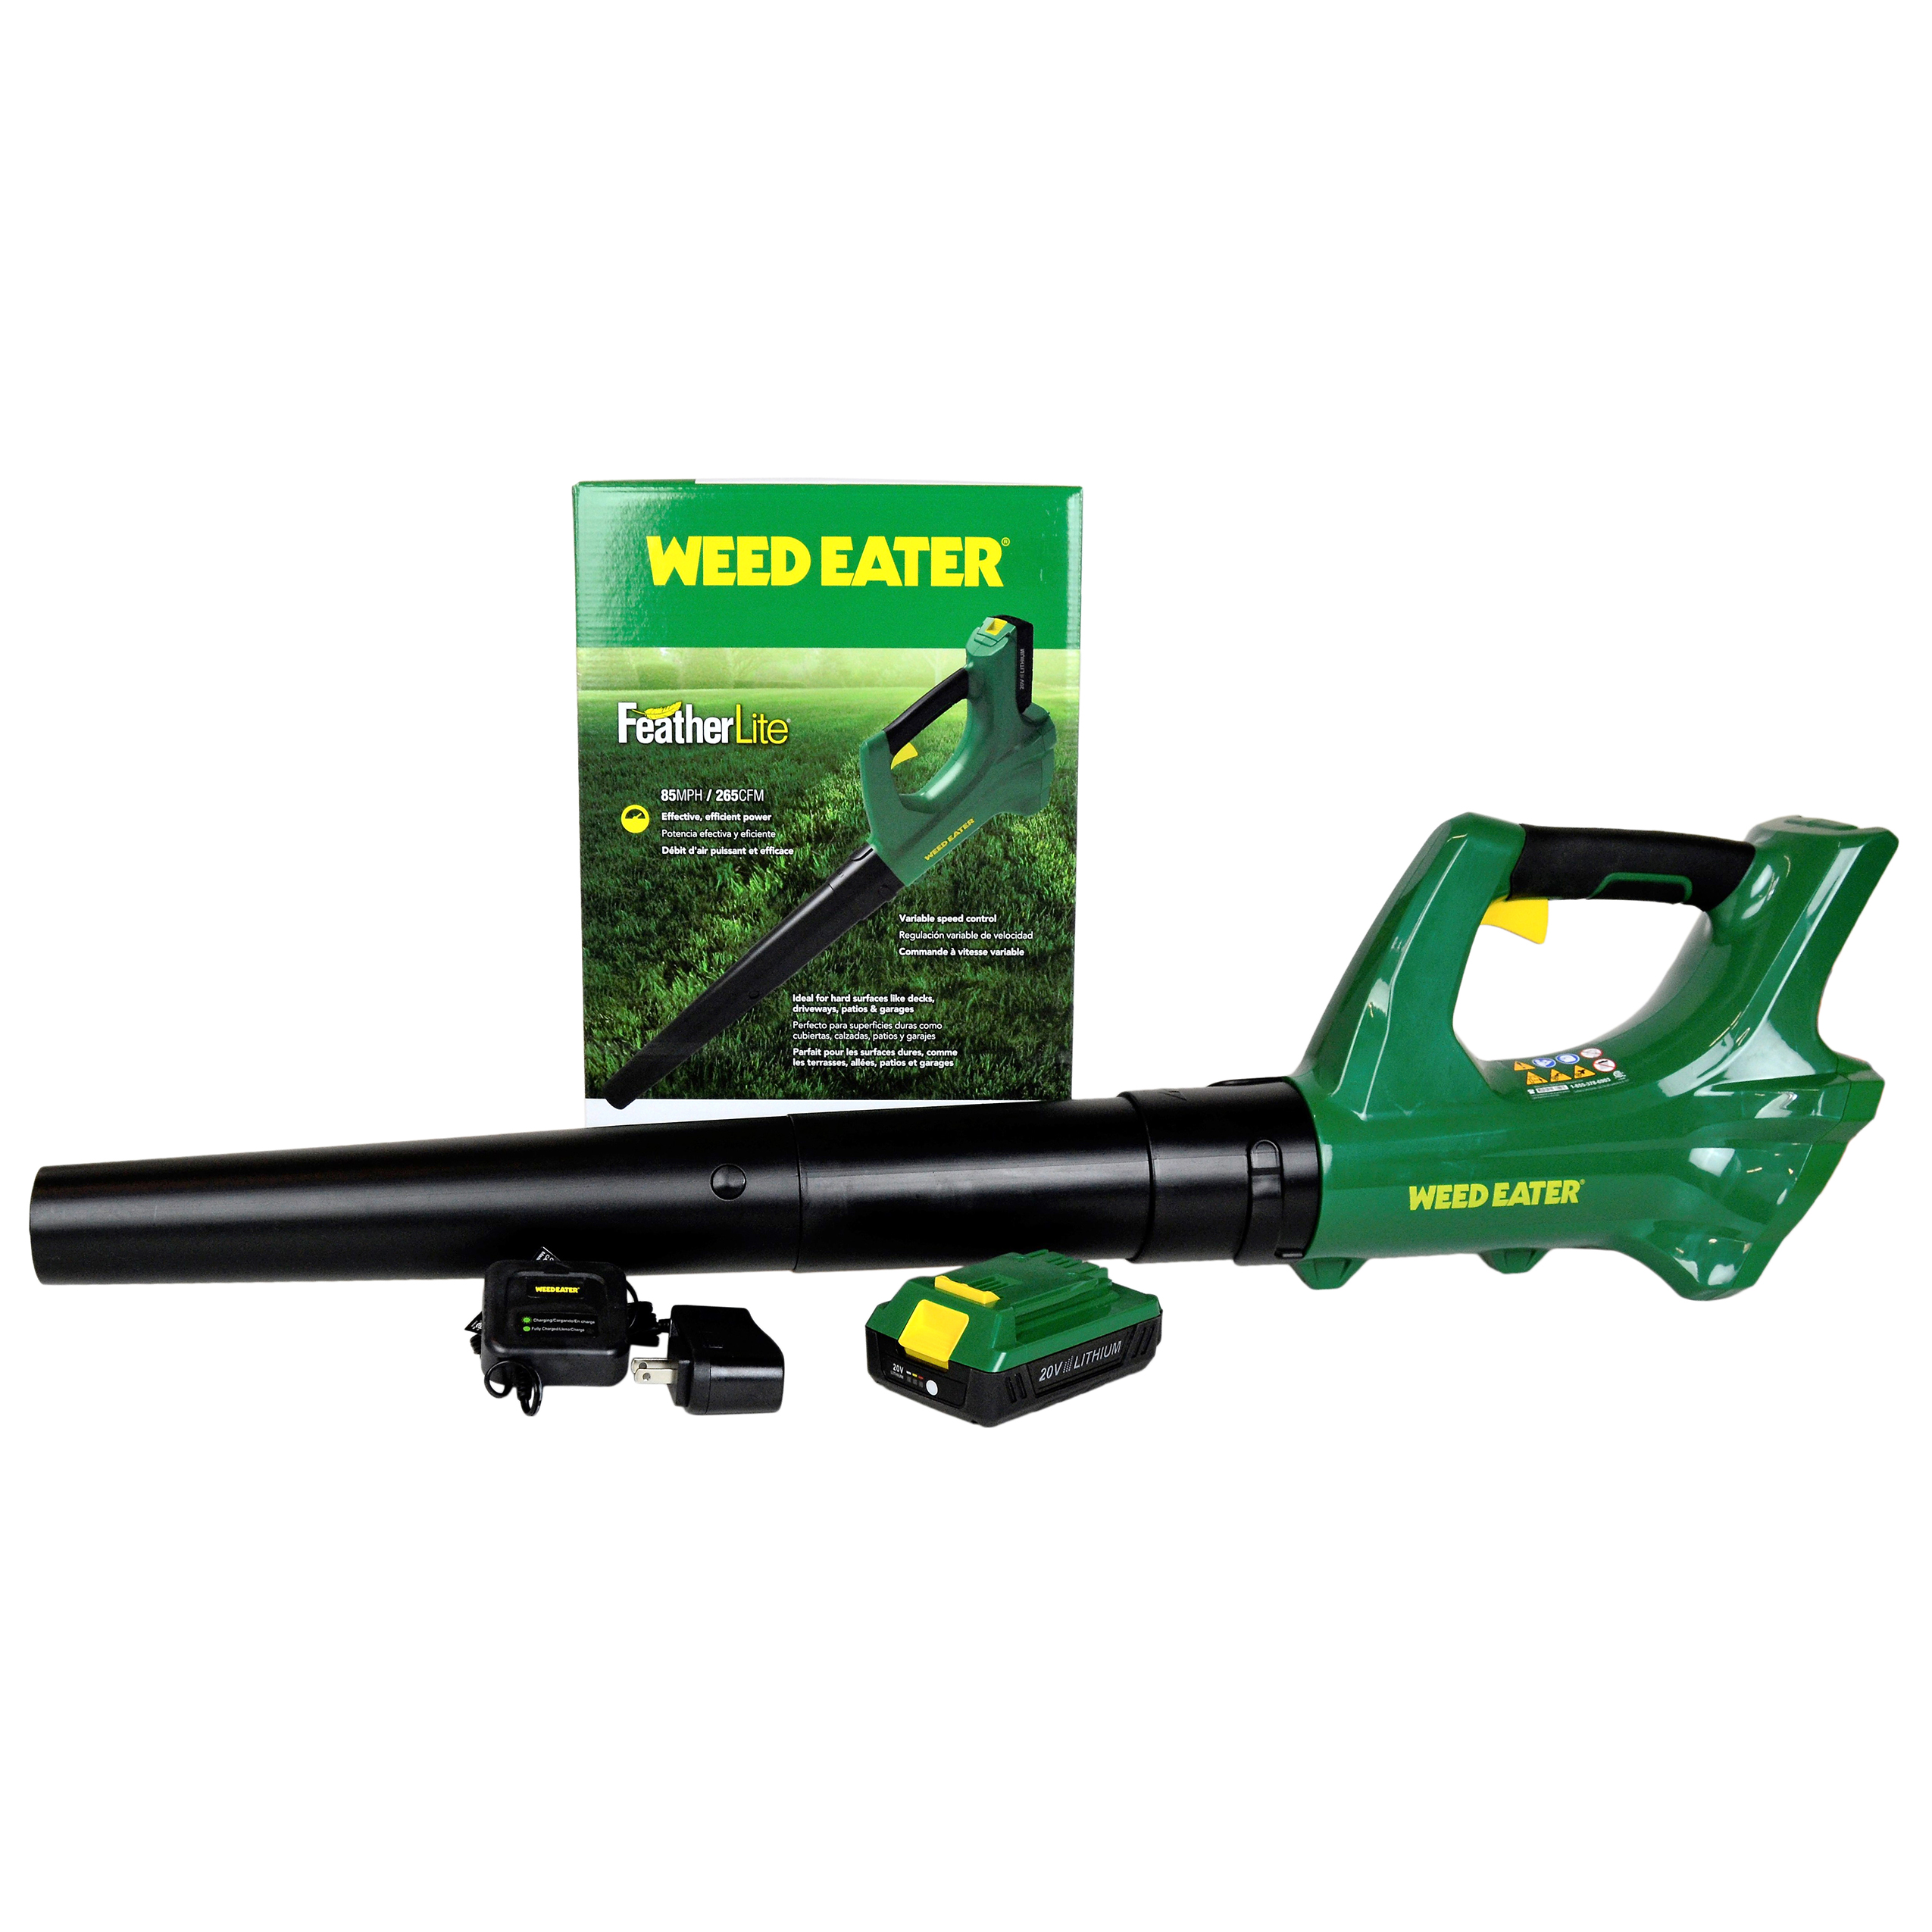 Weed Eater WE20VB 20V Volt Lithium-Ion Blower Kit with Battery and Charger